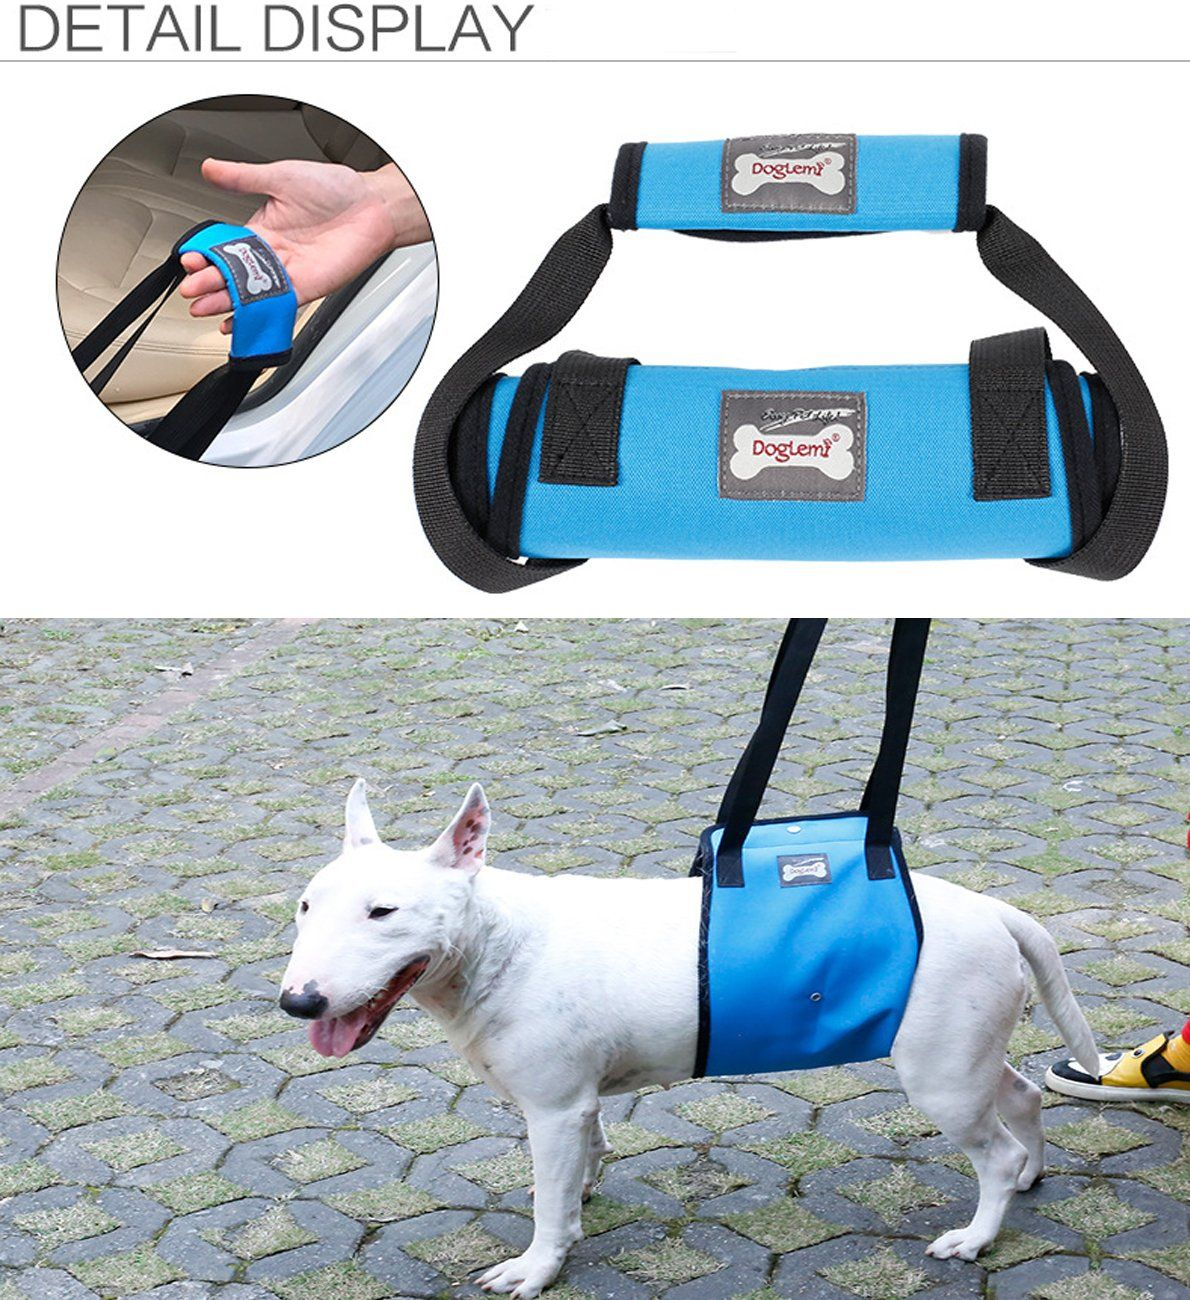 Slifeeling Dog Lift Support Harness With Handle For Older Or